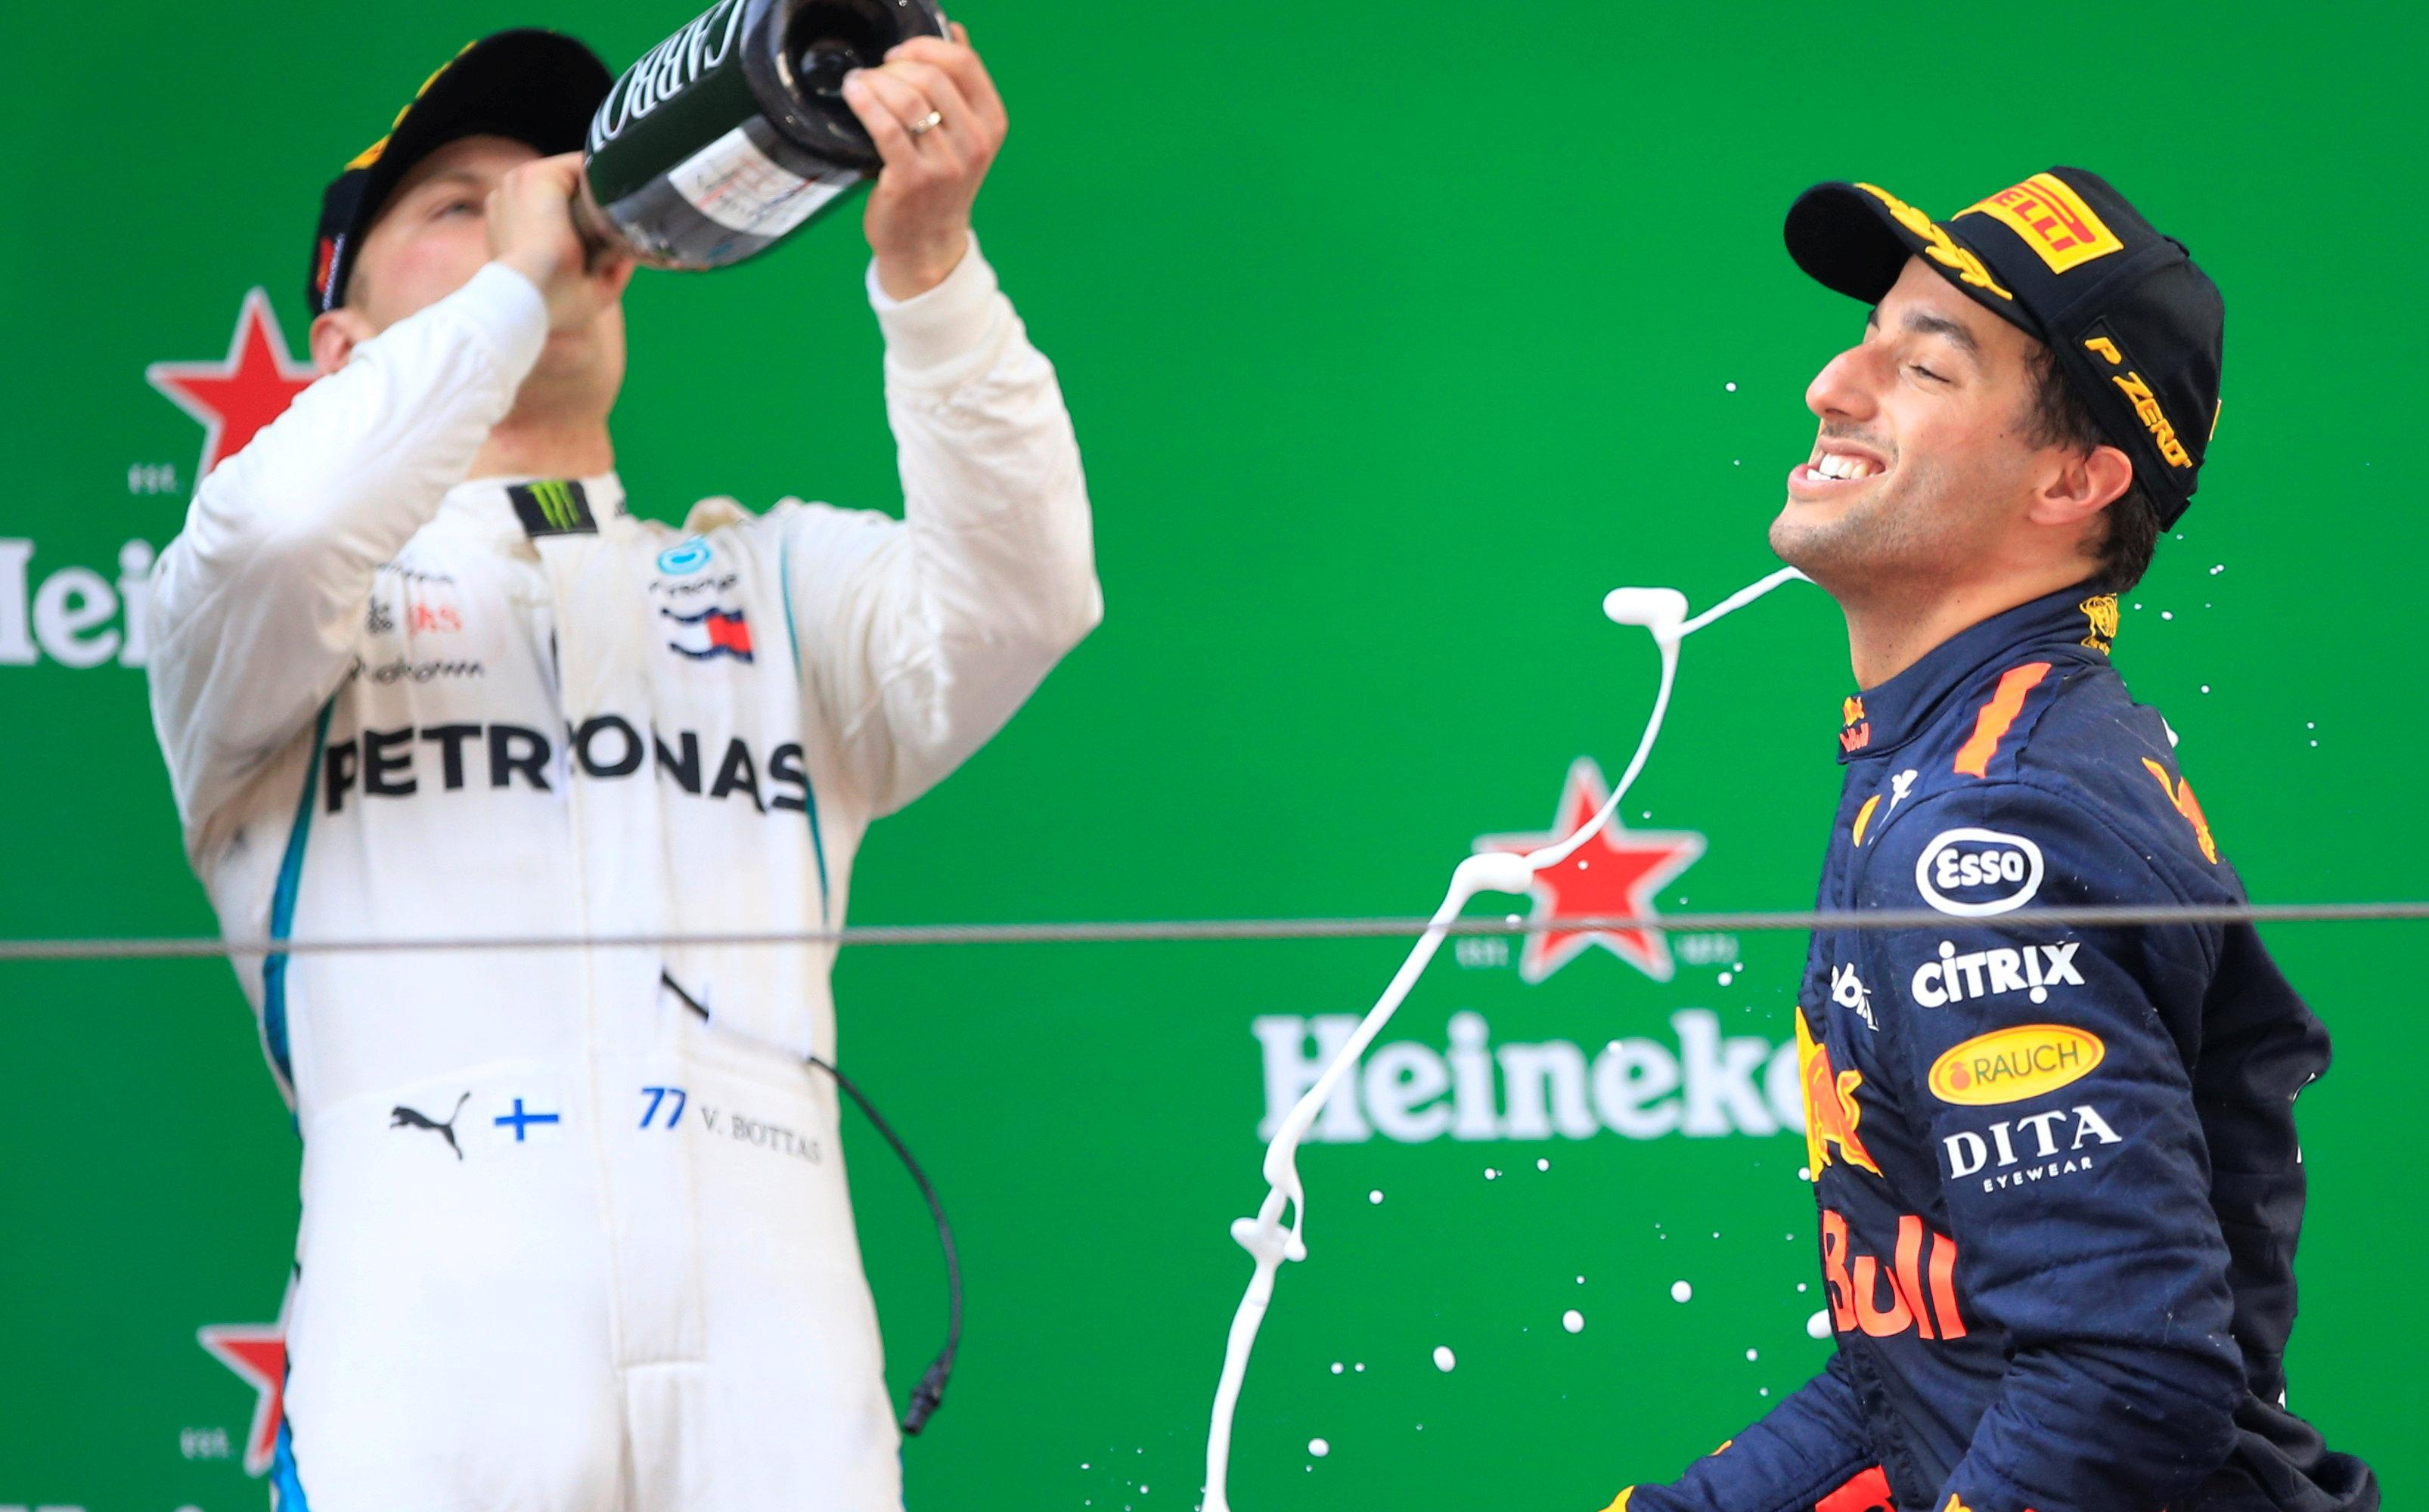 Daniel Ricciardo and Valtteri Botas on podium after Chinese GP